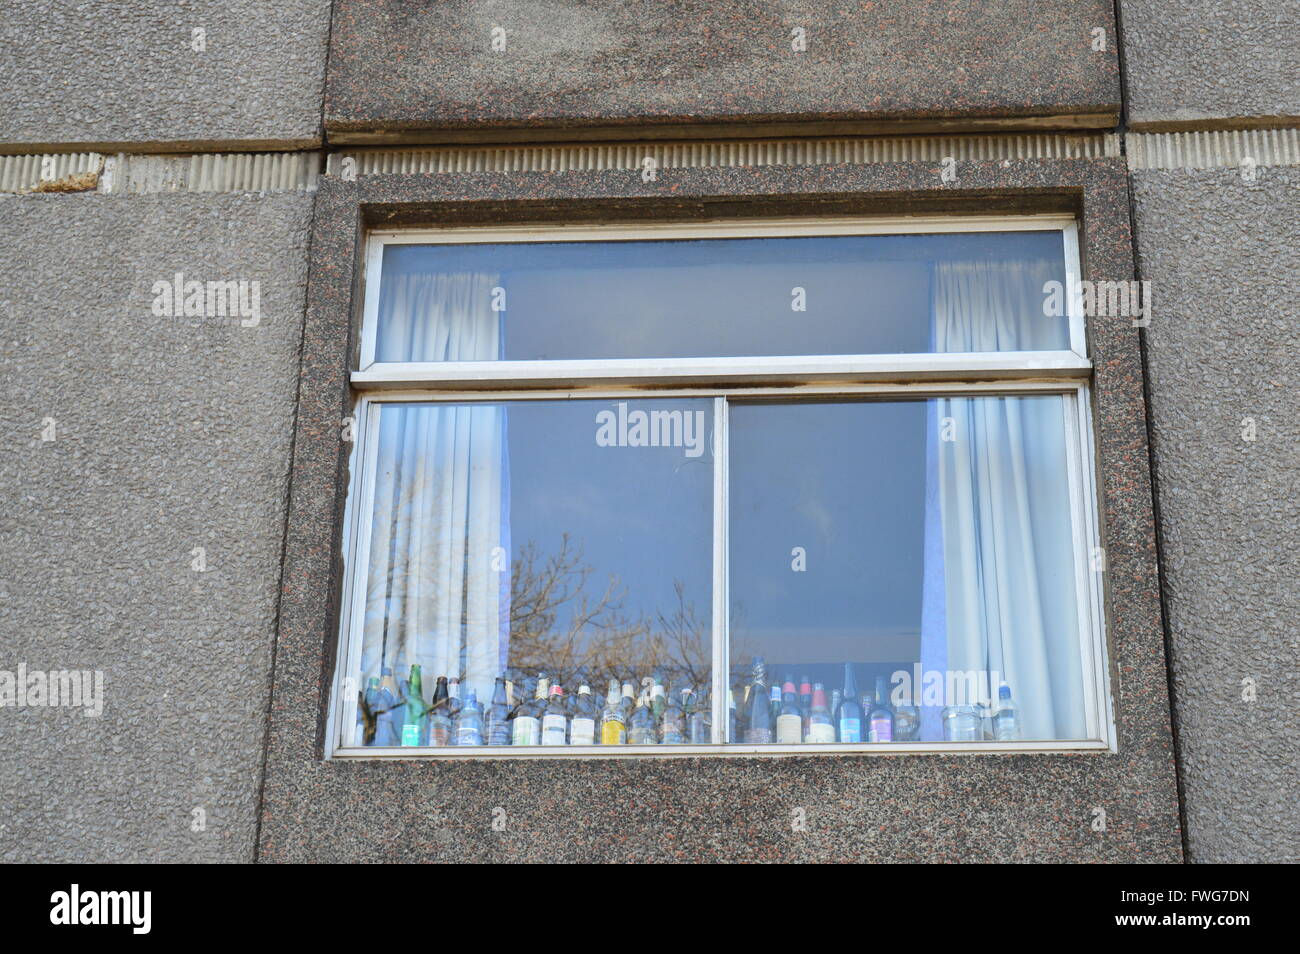 A grotty student window with bottles of alcohol lined up. Student life.  Exterior shot. Concrete decaying building - Stock Image